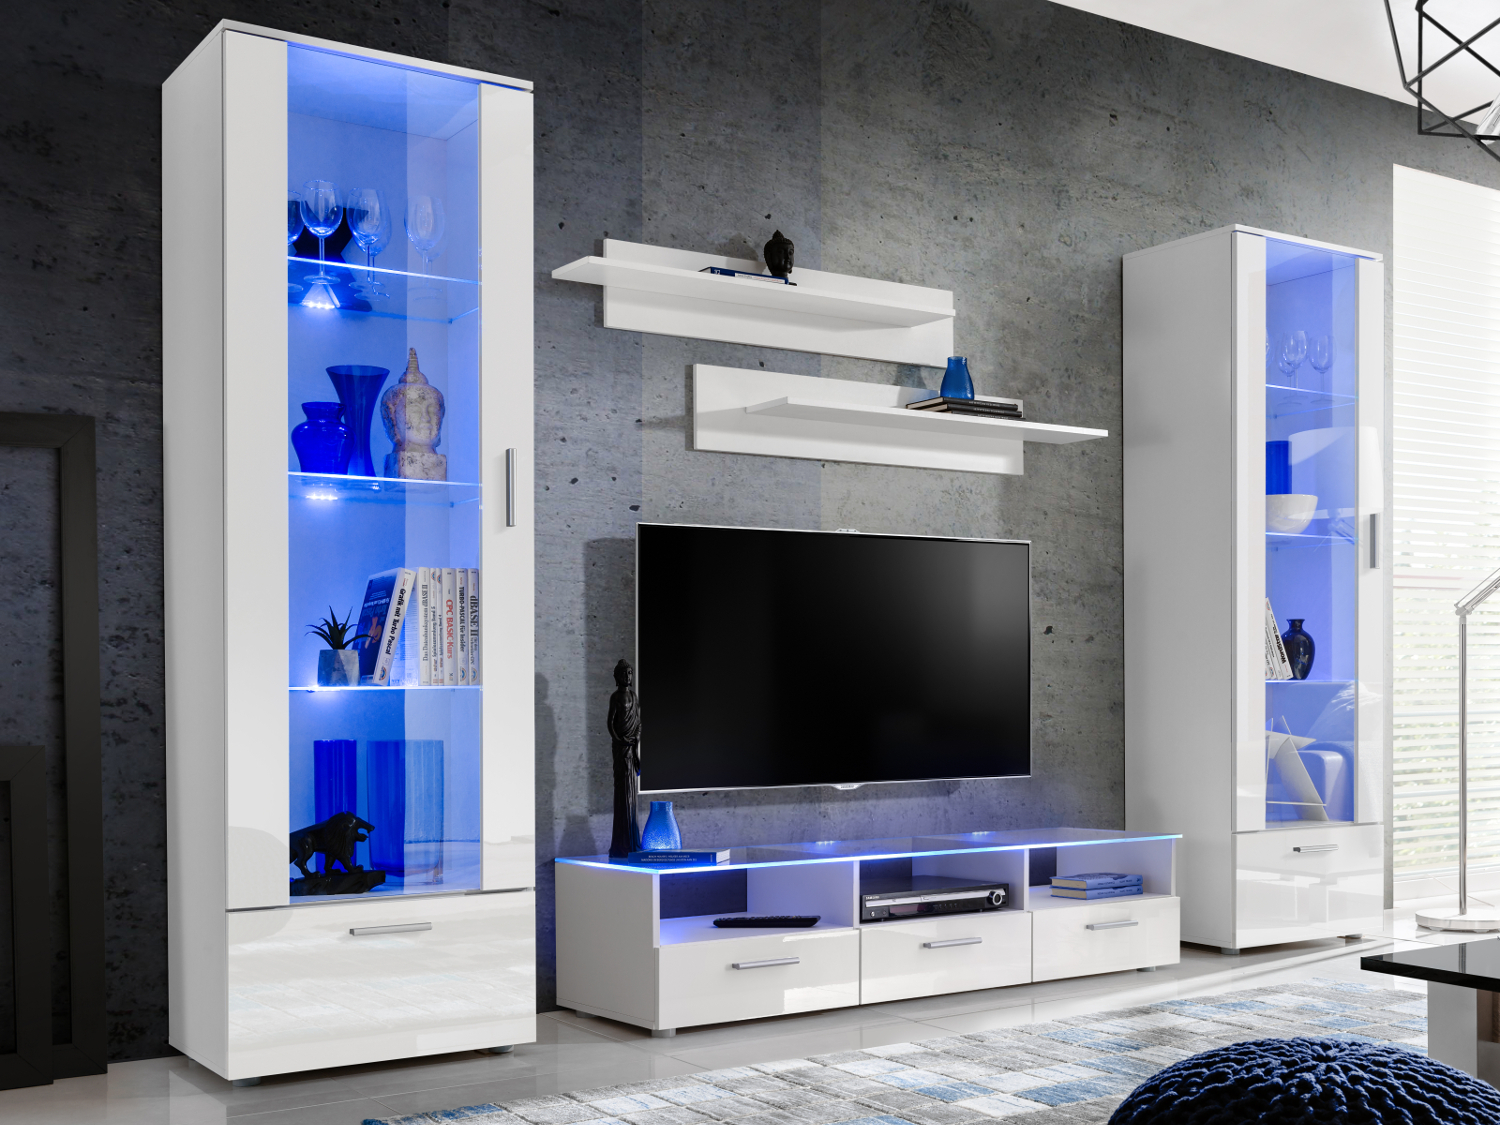 Modern Living Room Set Cupboard Stand Gloss Tv Unit Cabinet intended for 14 Genius Ideas How to Improve Living Room Set With TV